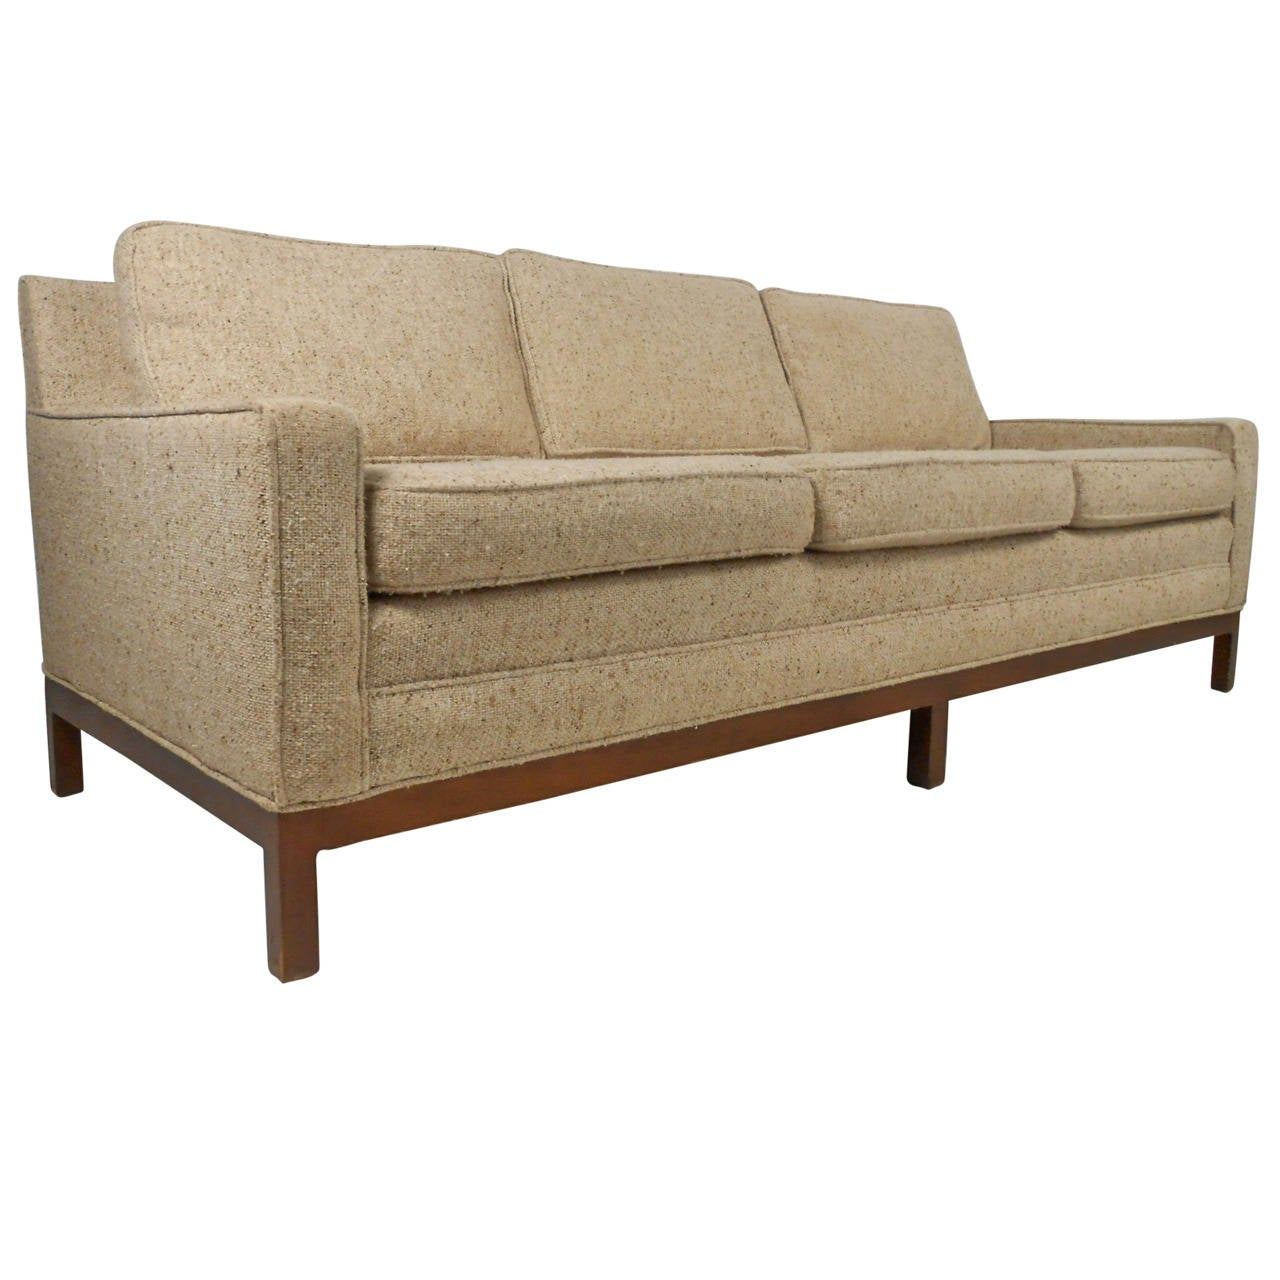 Stylish vintage modern sofa after florence knoll for sale for Modern loveseat